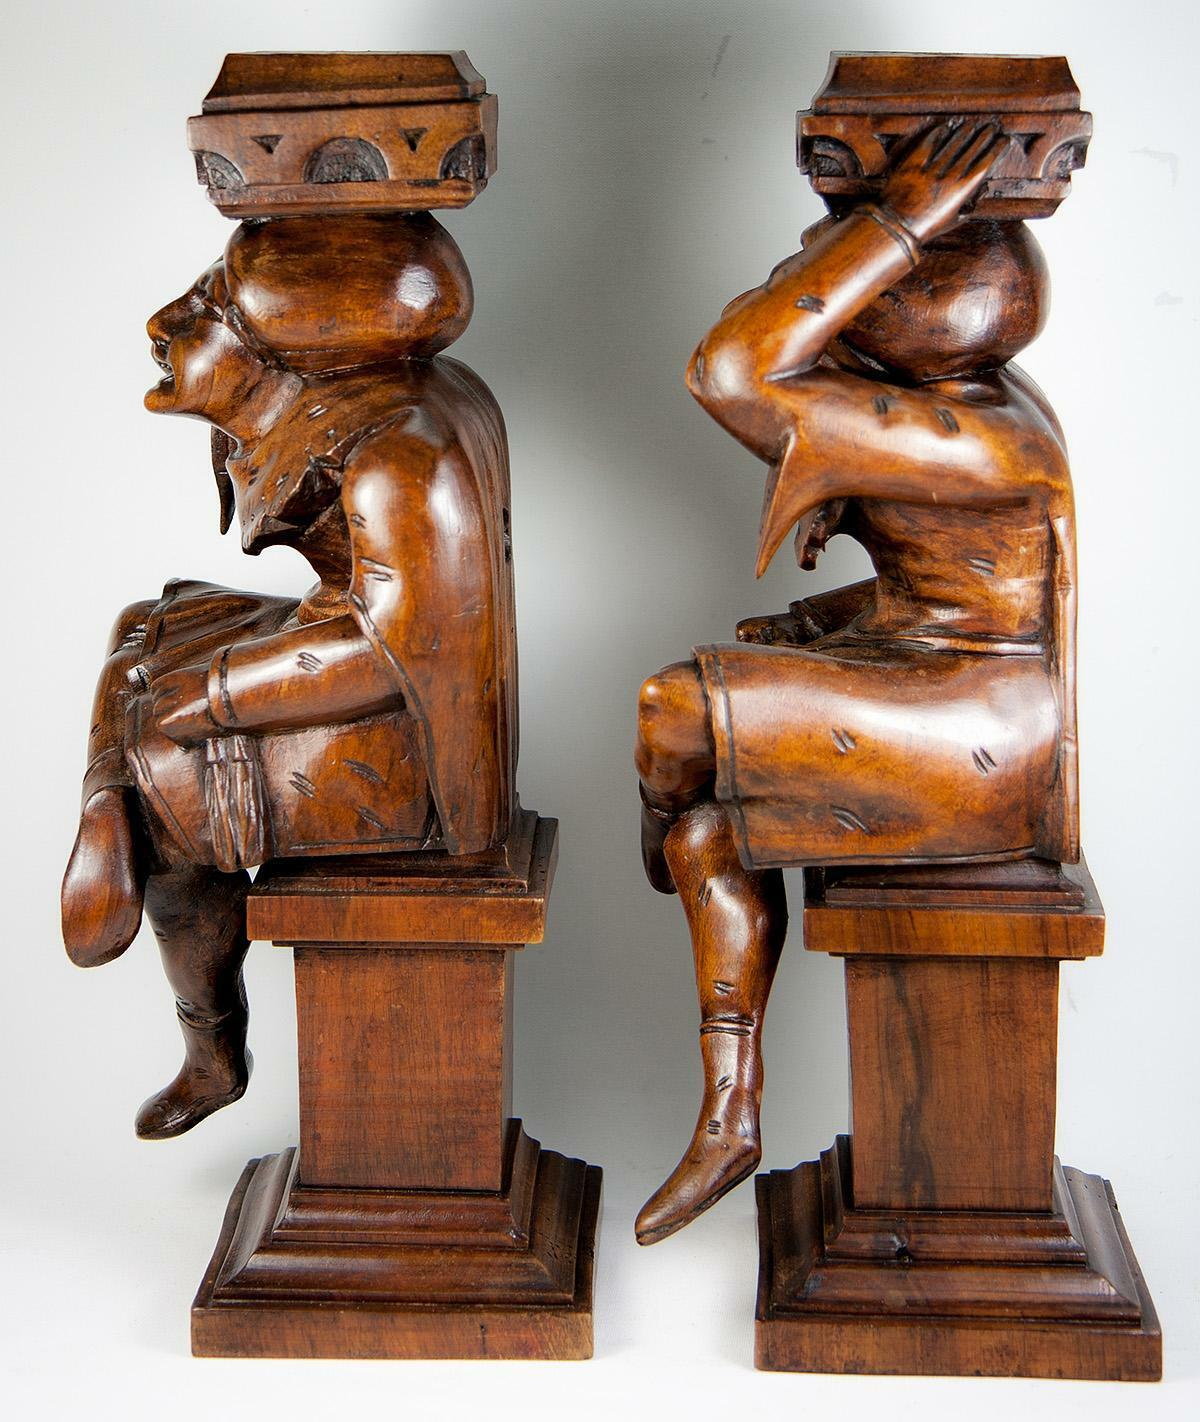 Antique PAIR of Carved Wood Figures, Great as Candle Stands or Cabinet Supports